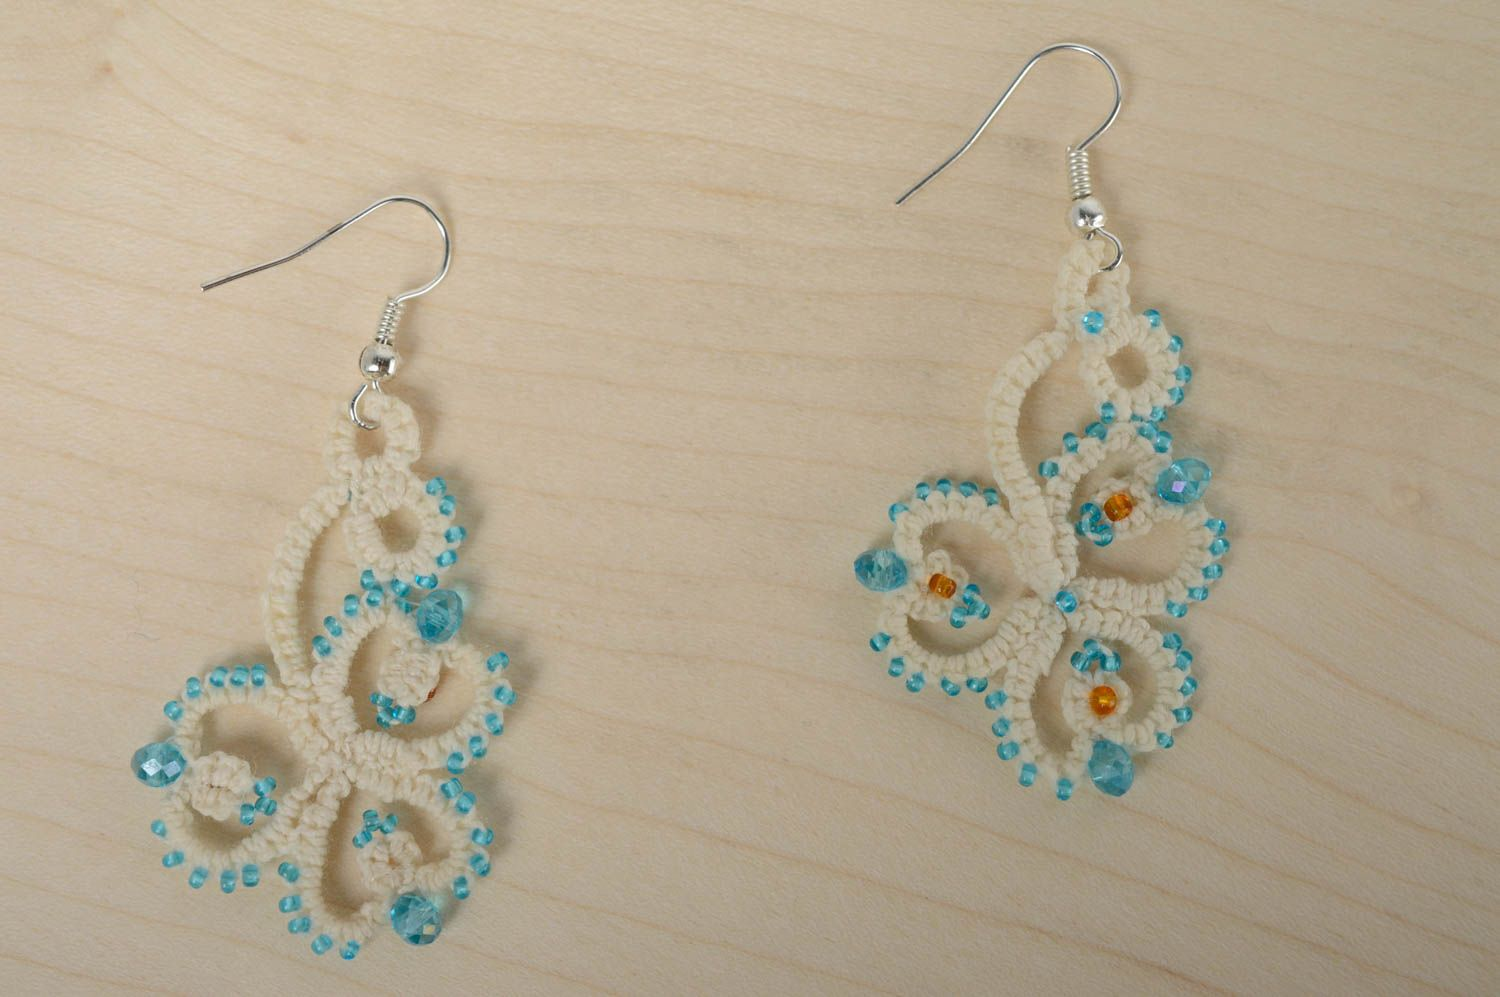 Festive woven earrings photo 2